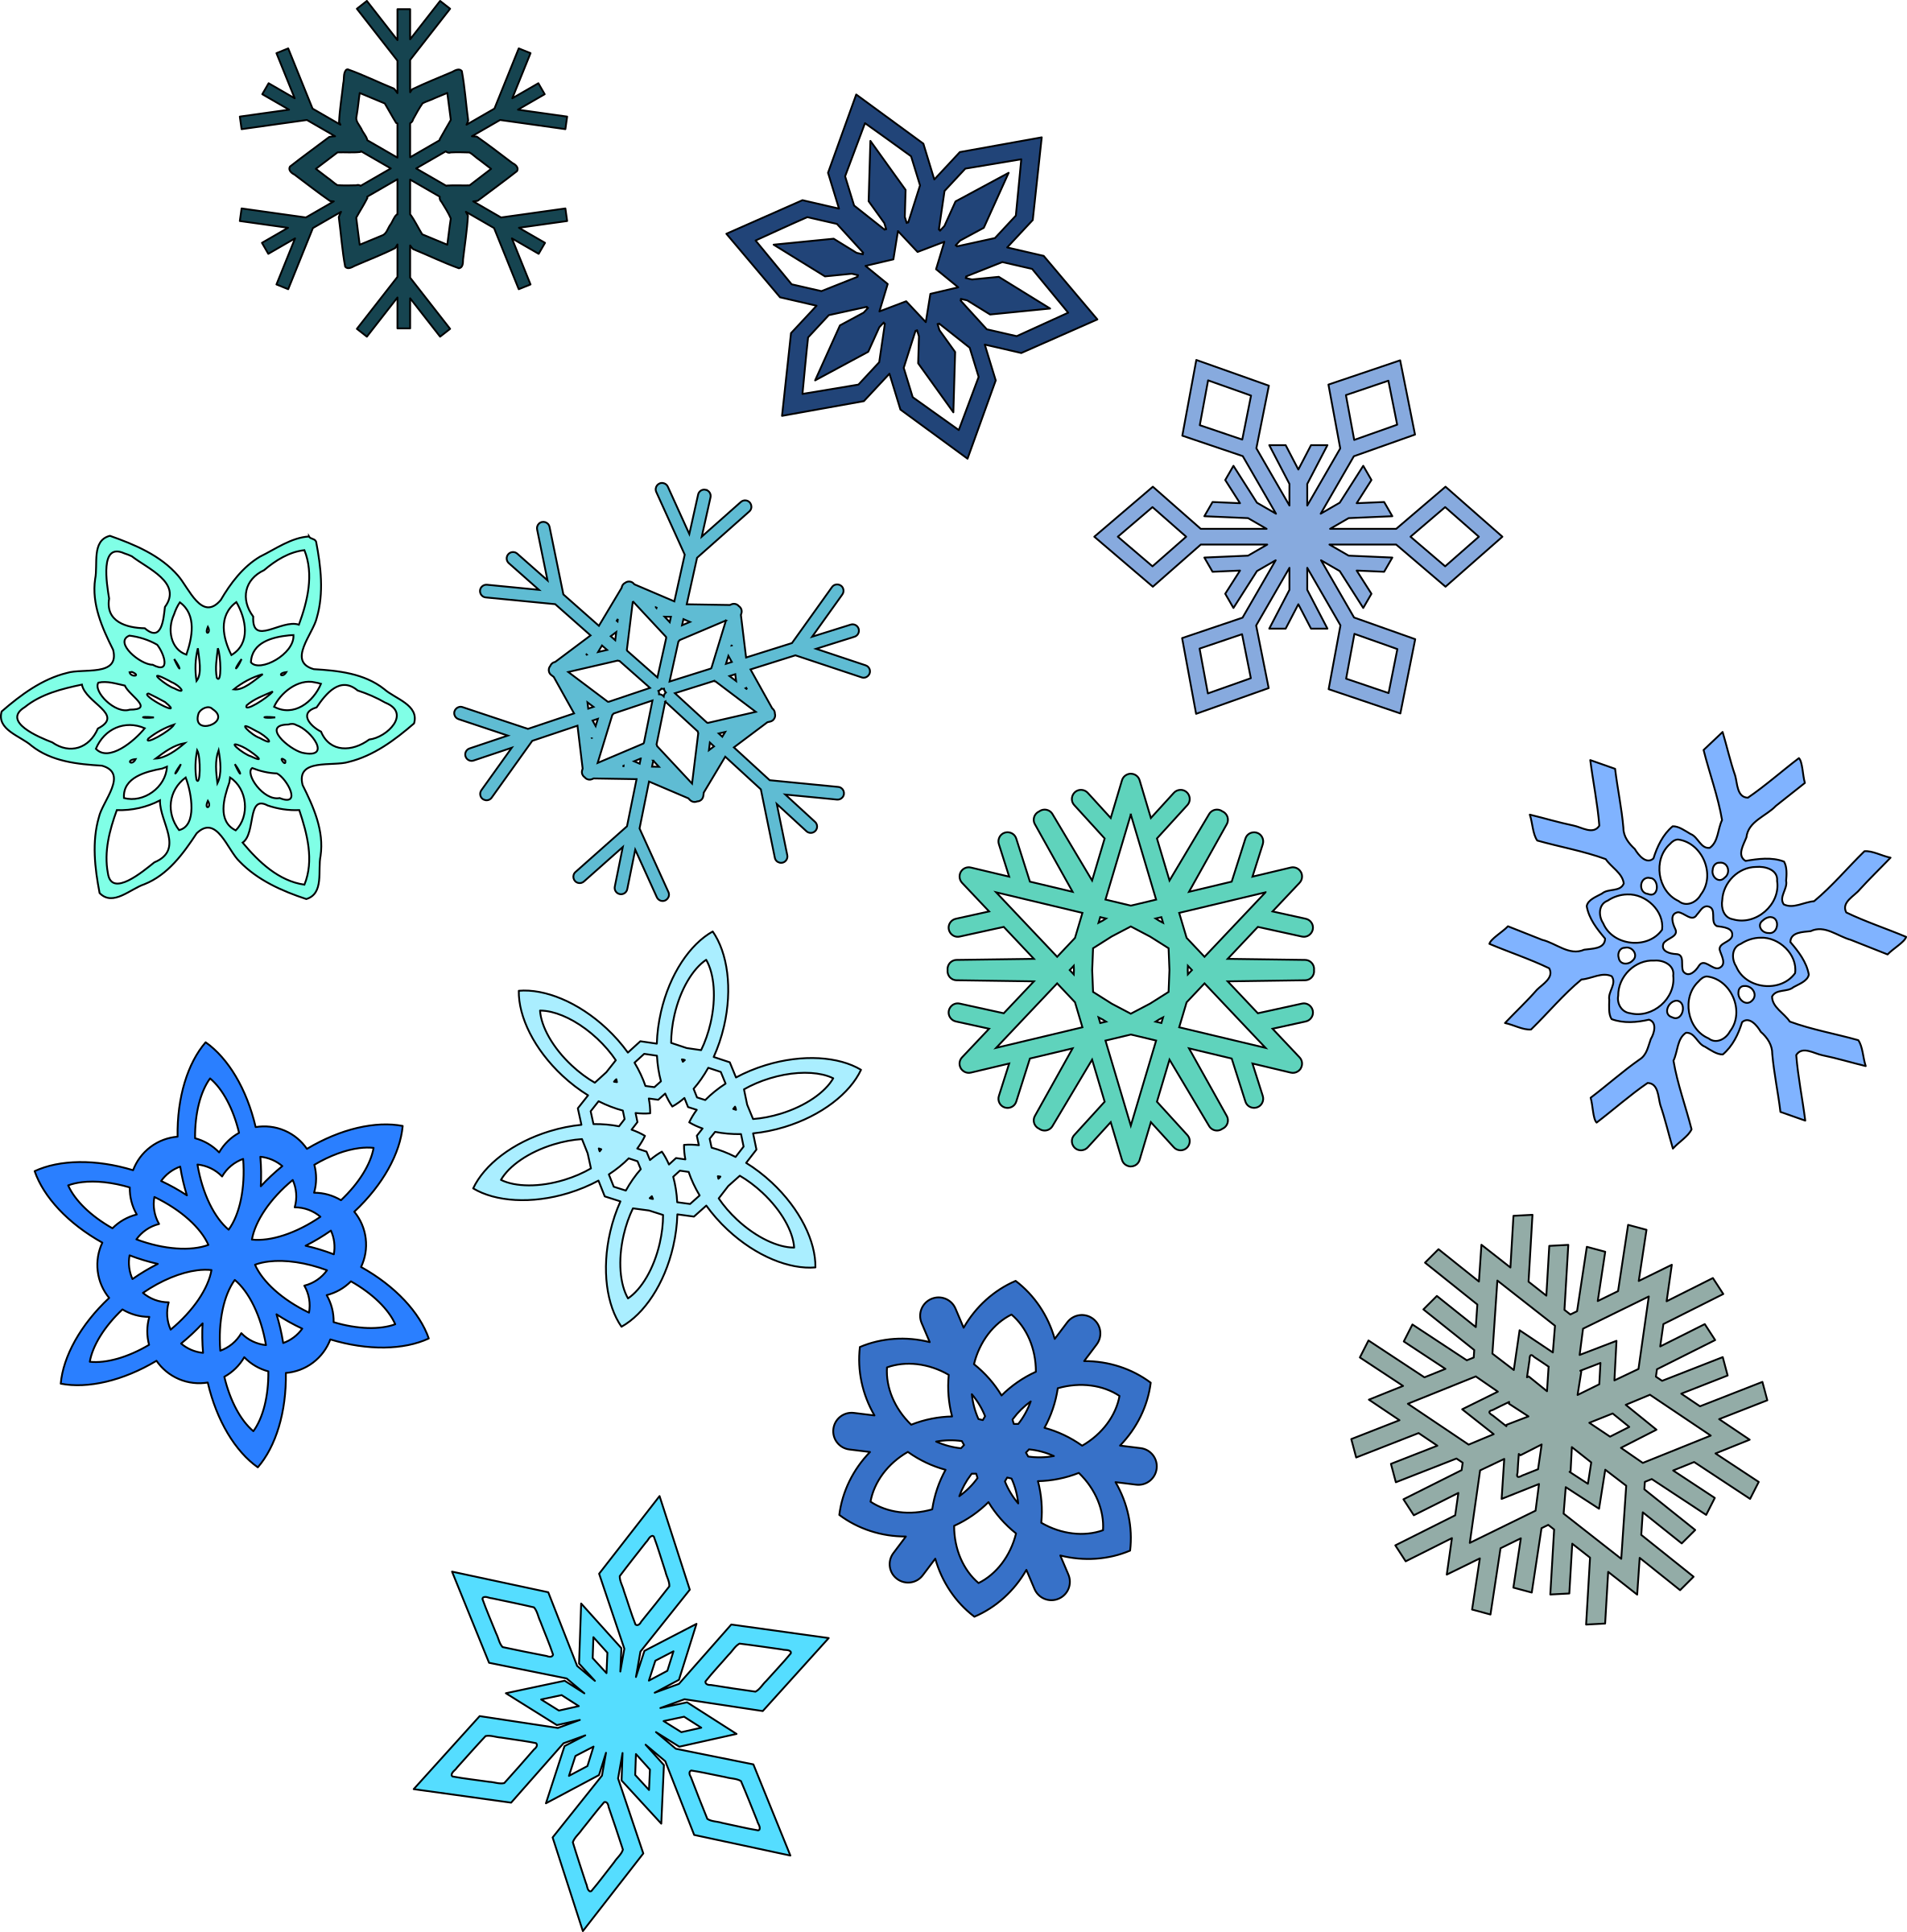 Snow group keeping a. Emotion snowflake clipart